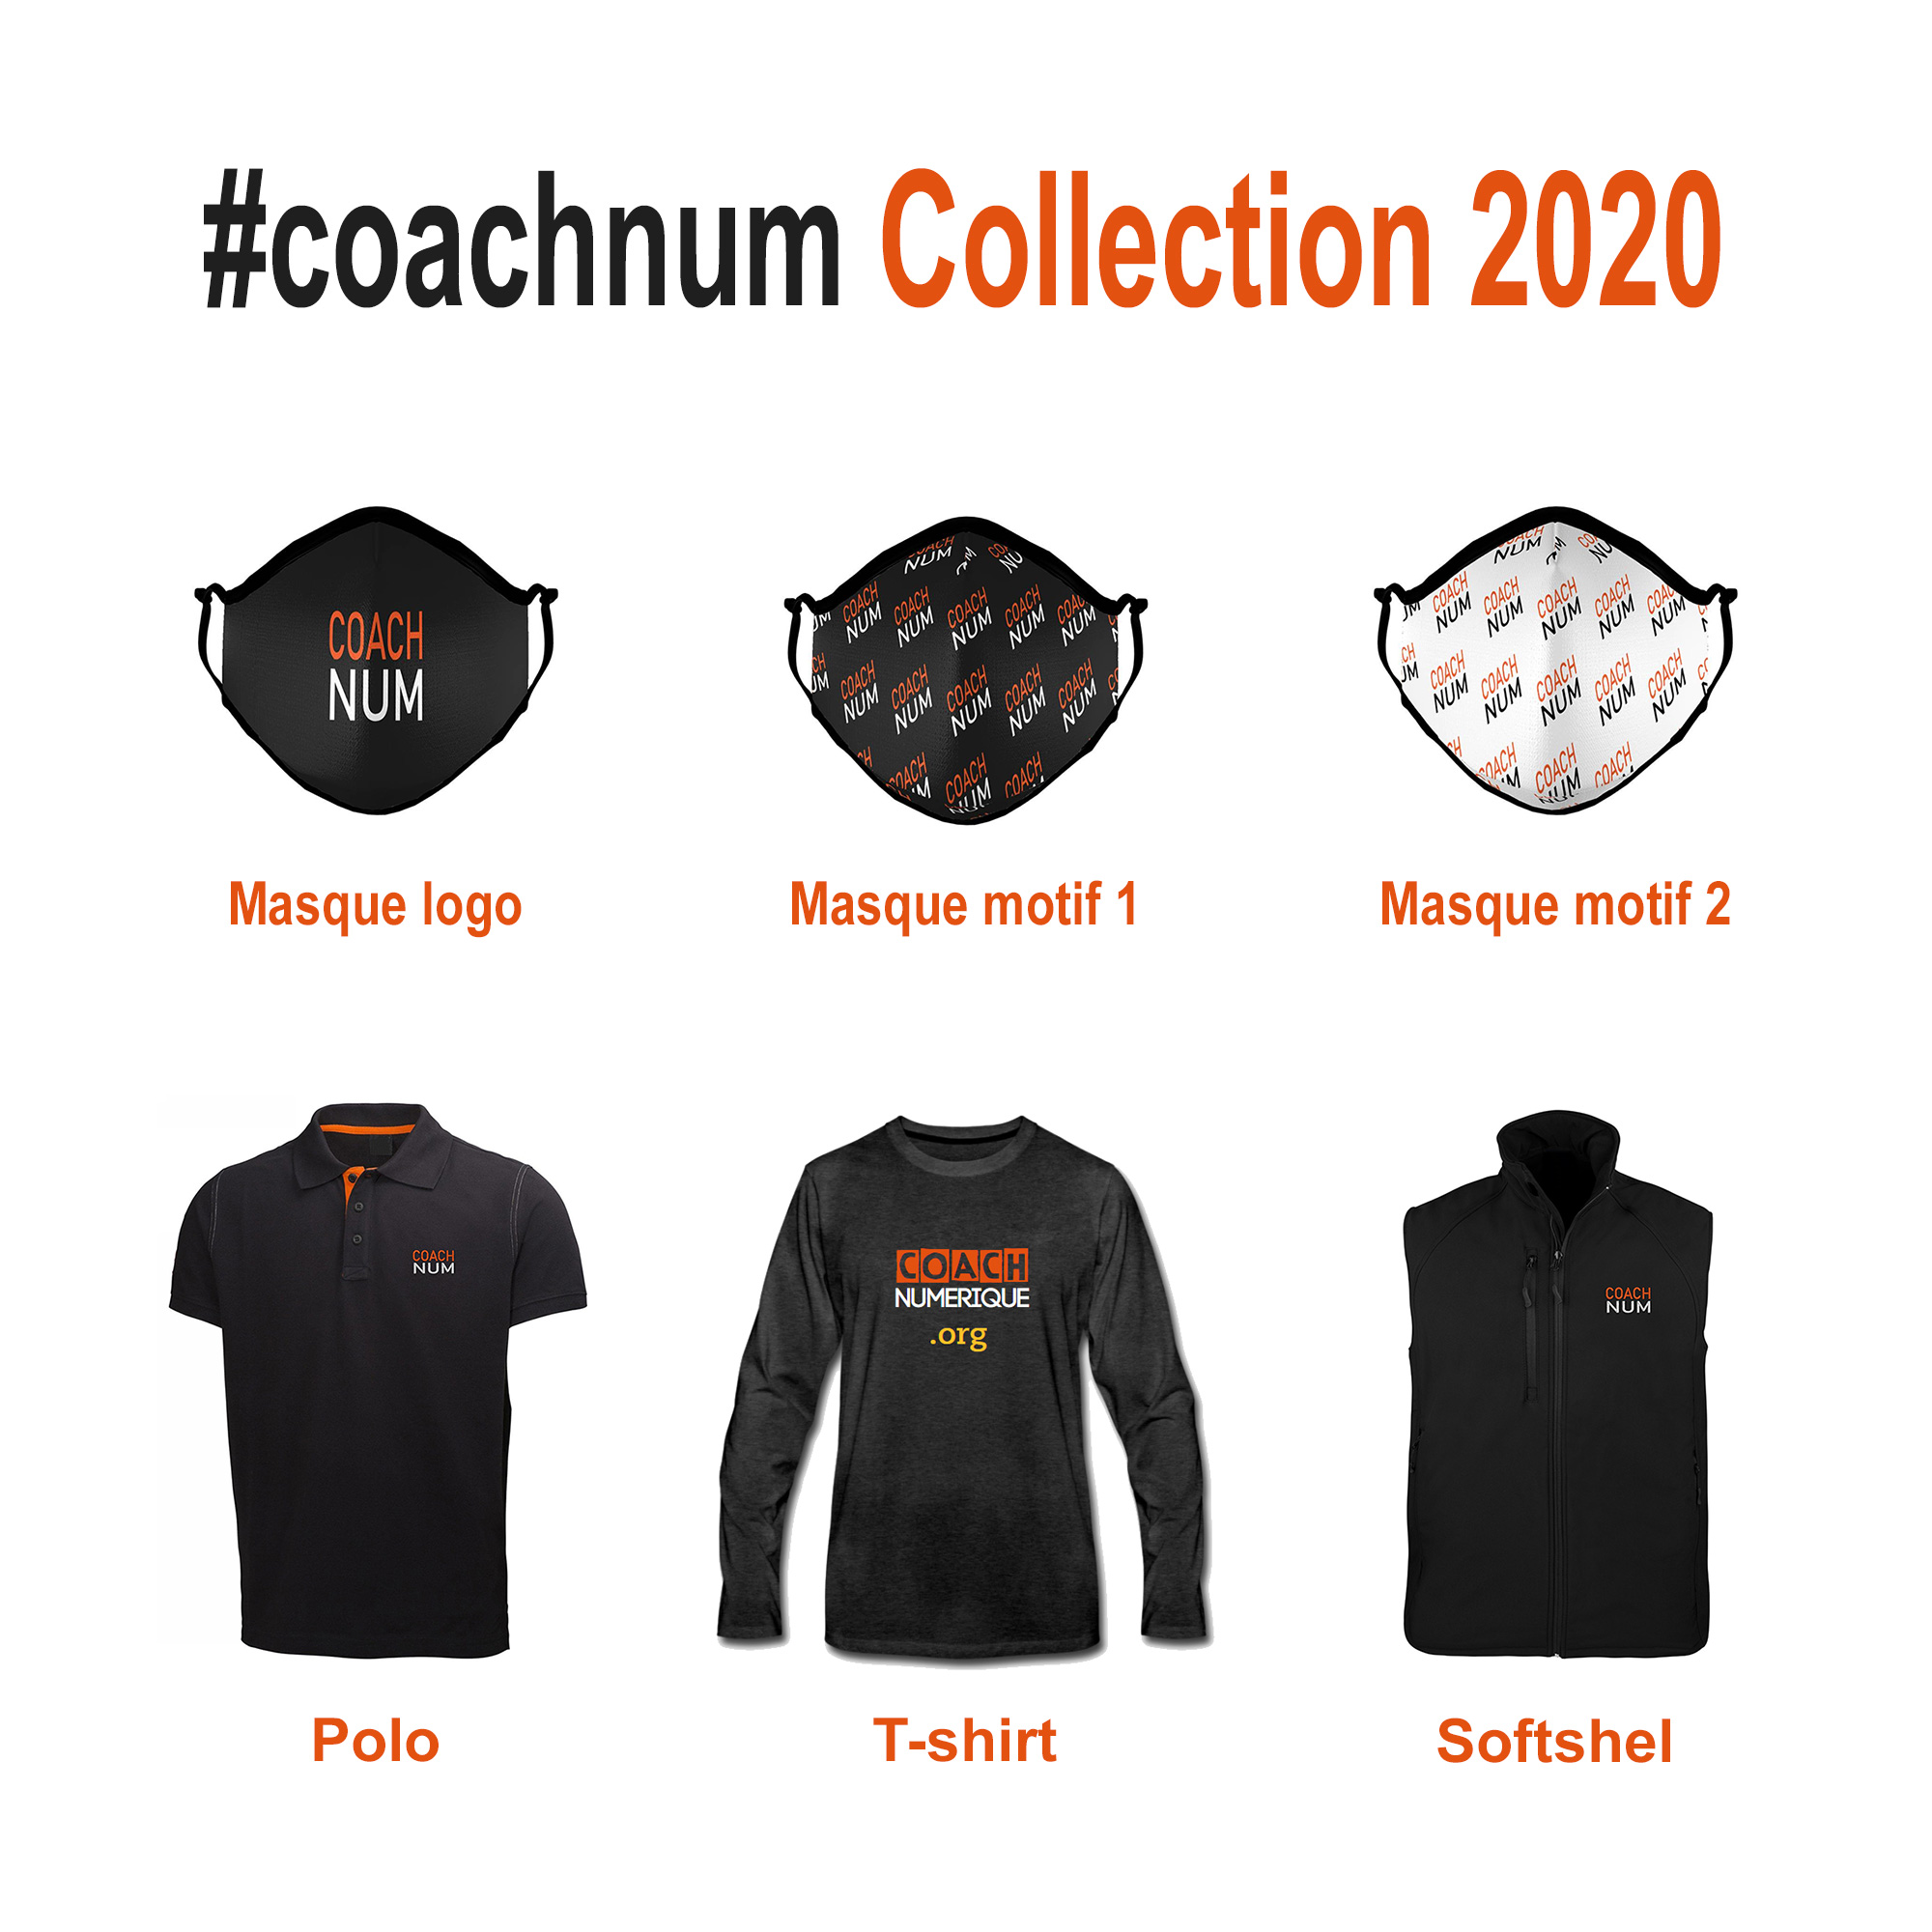 Coachnum Collection 2020 coach numerique Masque Logo ️Motif Polo T-shirt Softshel